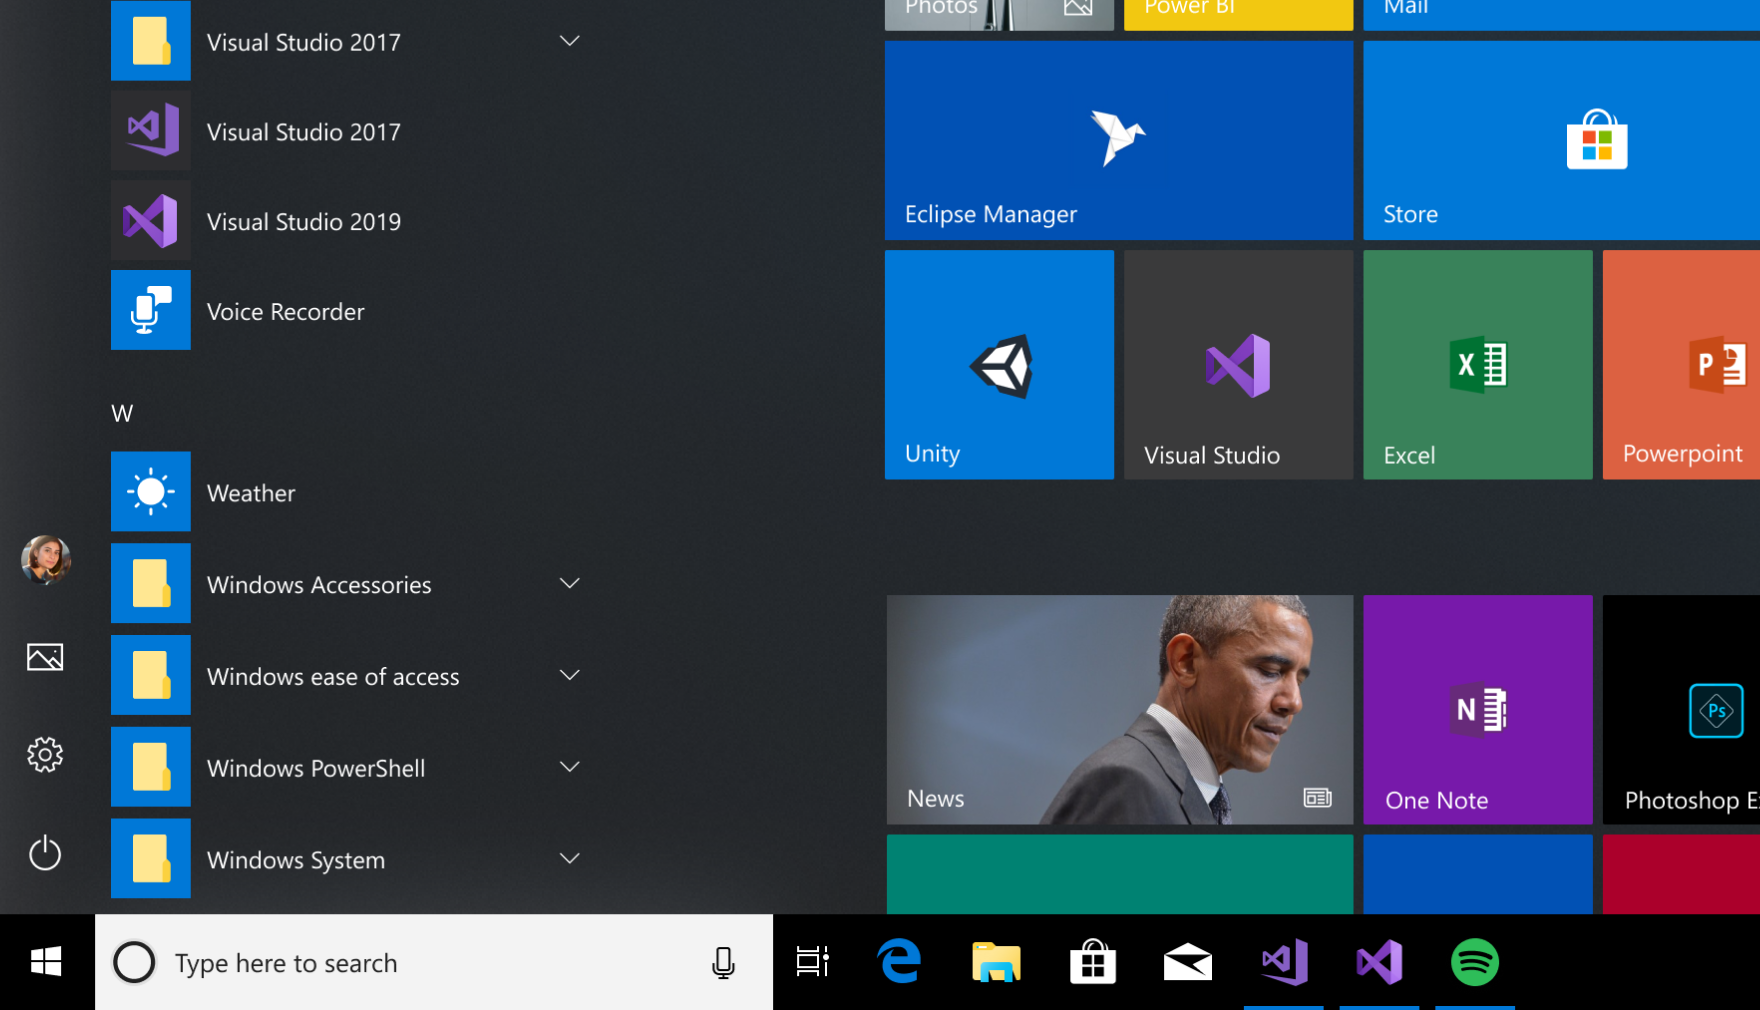 The new Visual Studio 2019 icon in the taskbar and start menu